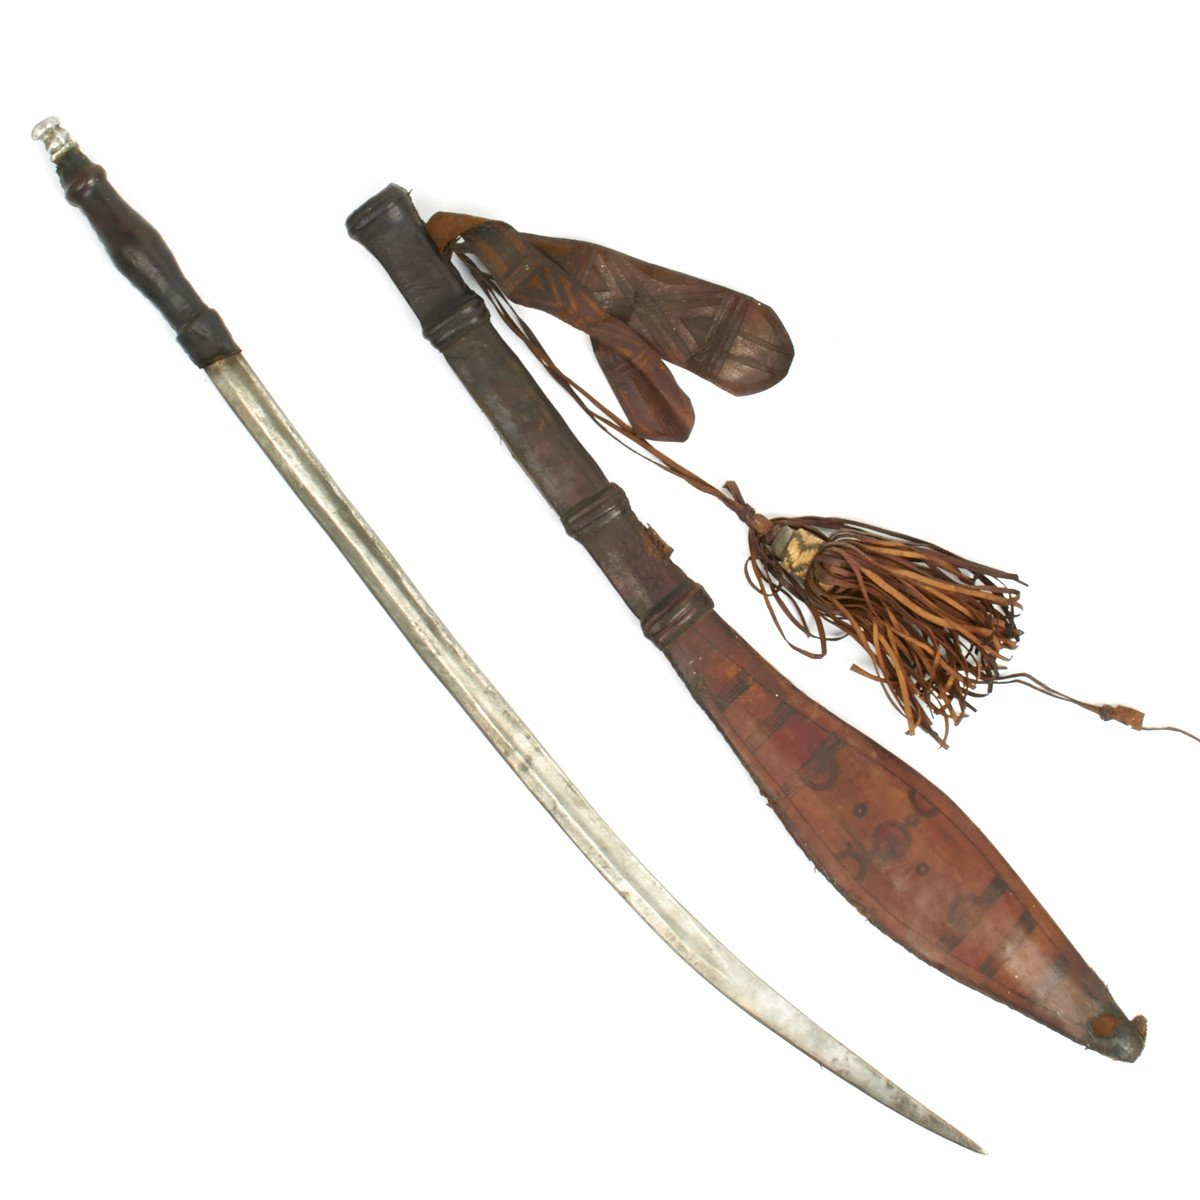 Original North West African Fulani Sword of the Slave Trade